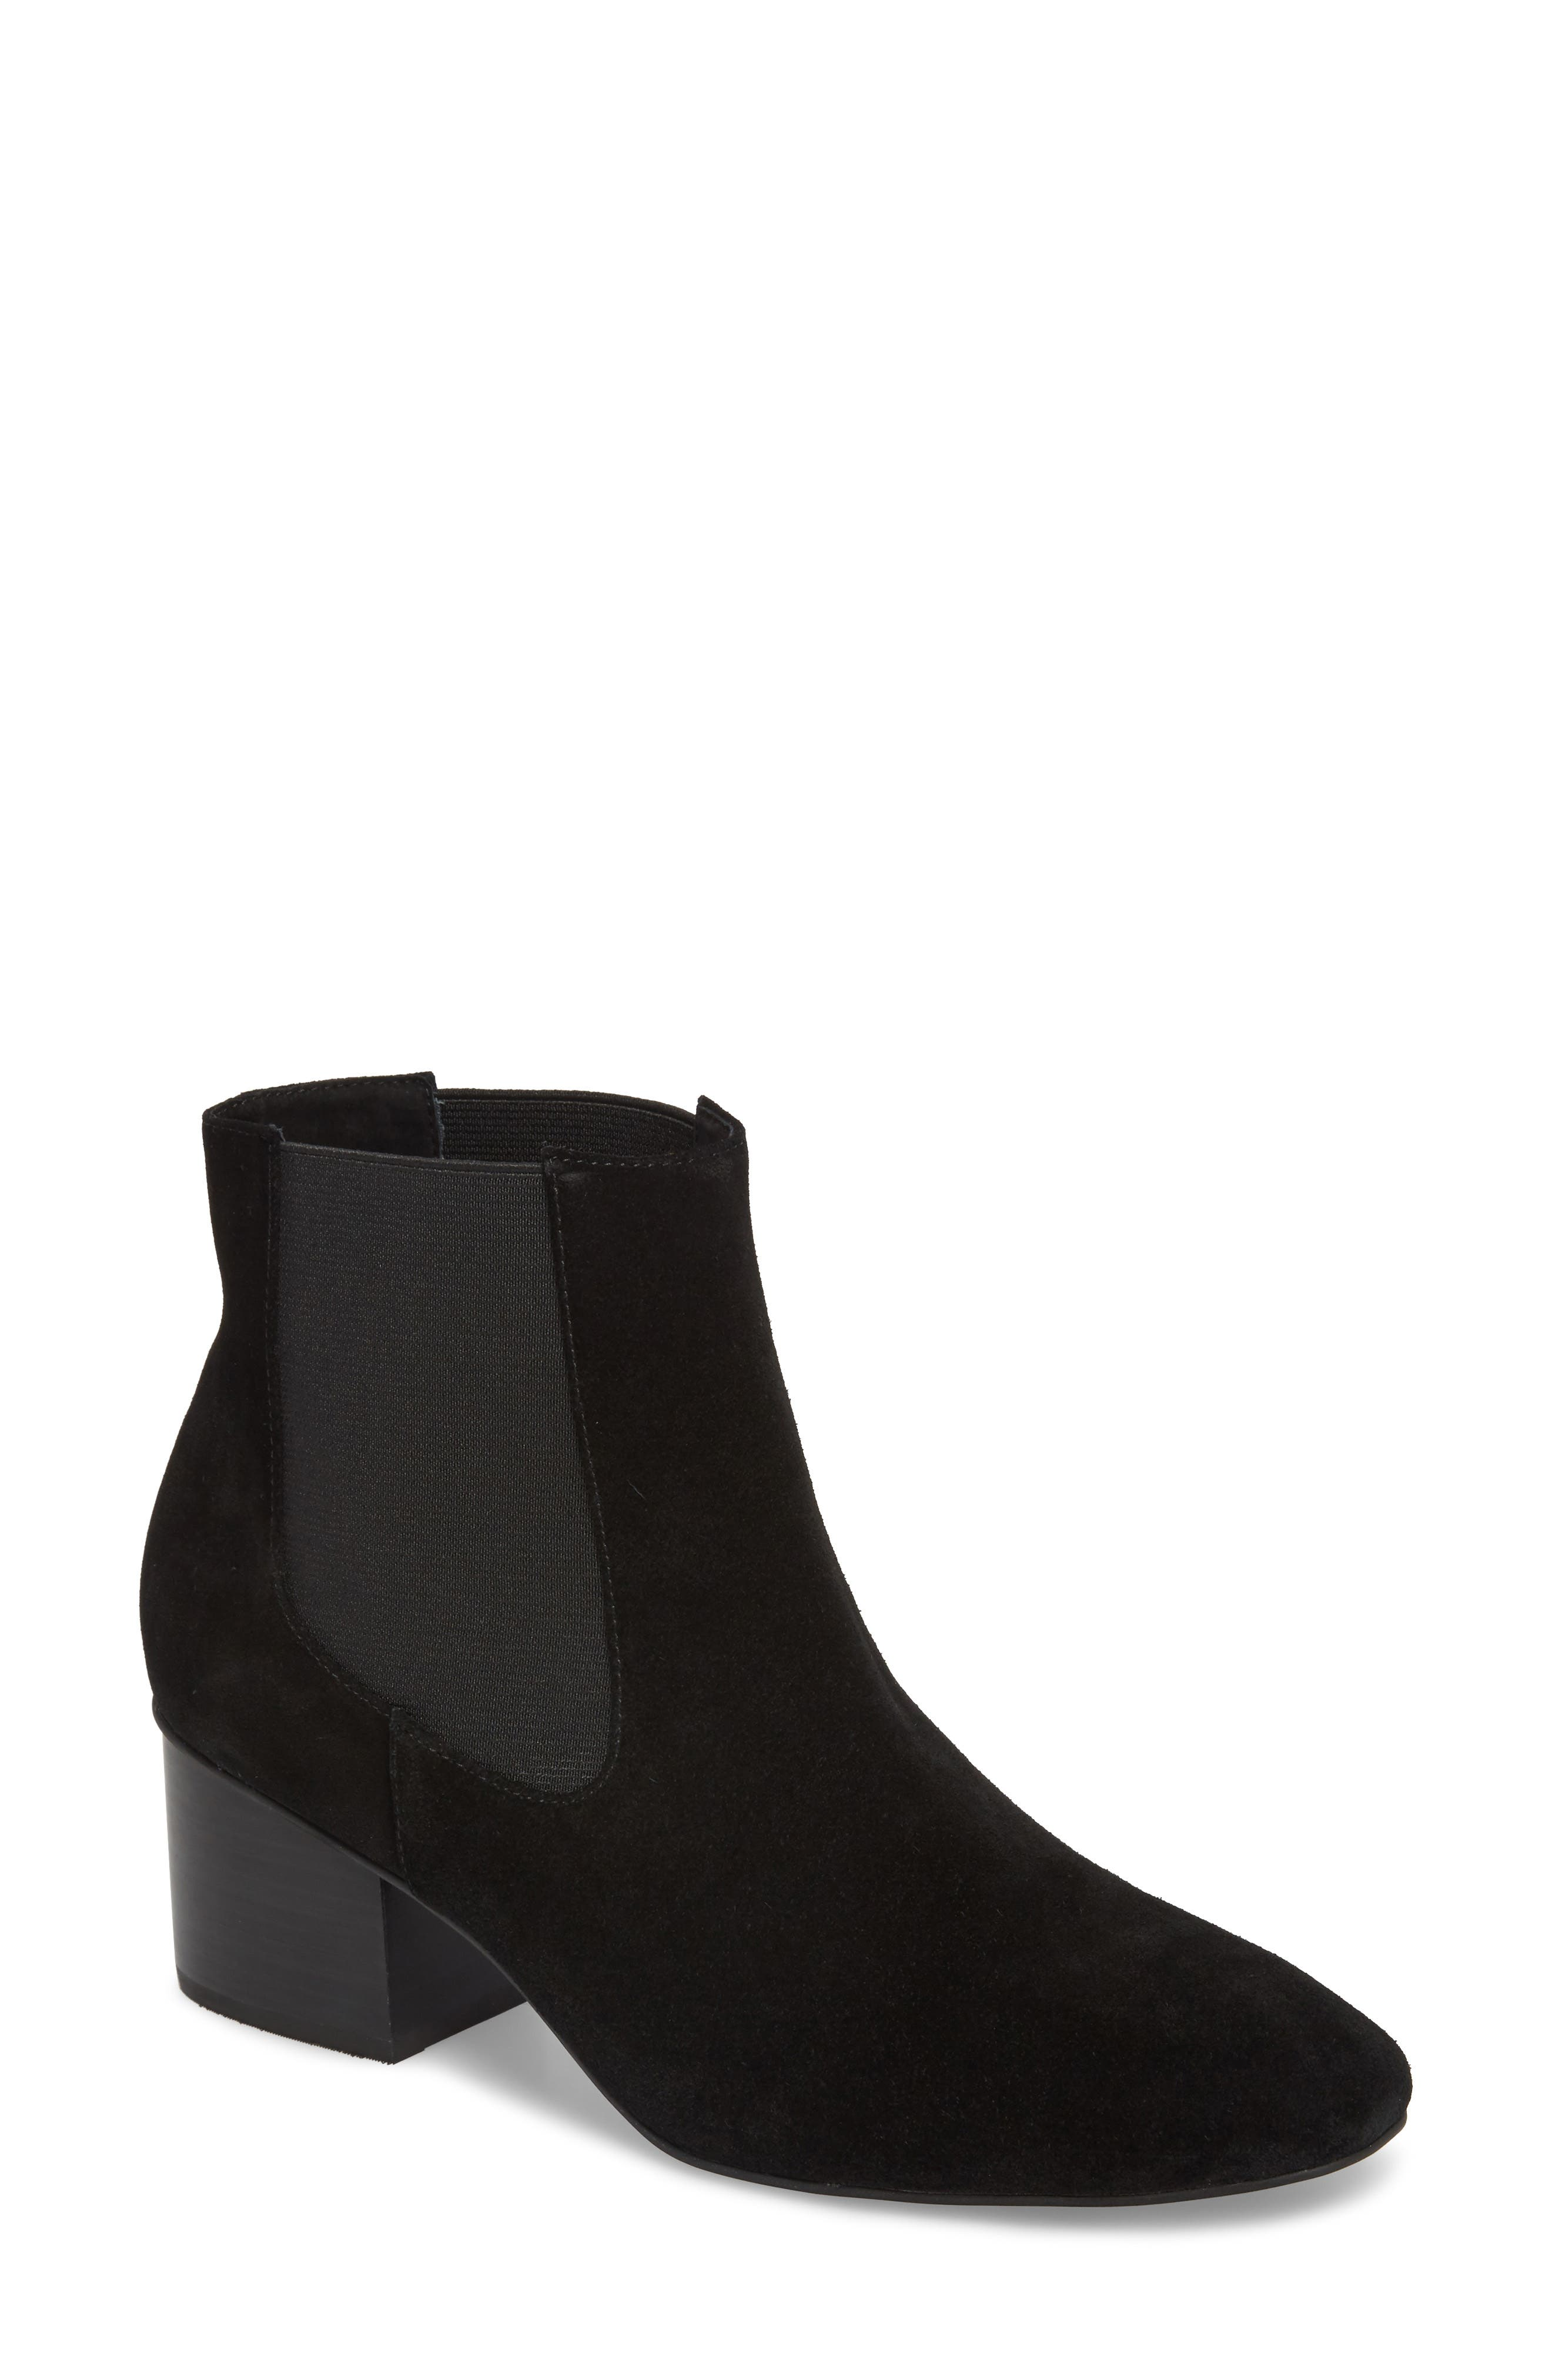 Tucker Chelsea Bootie,                         Main,                         color, Black Leather